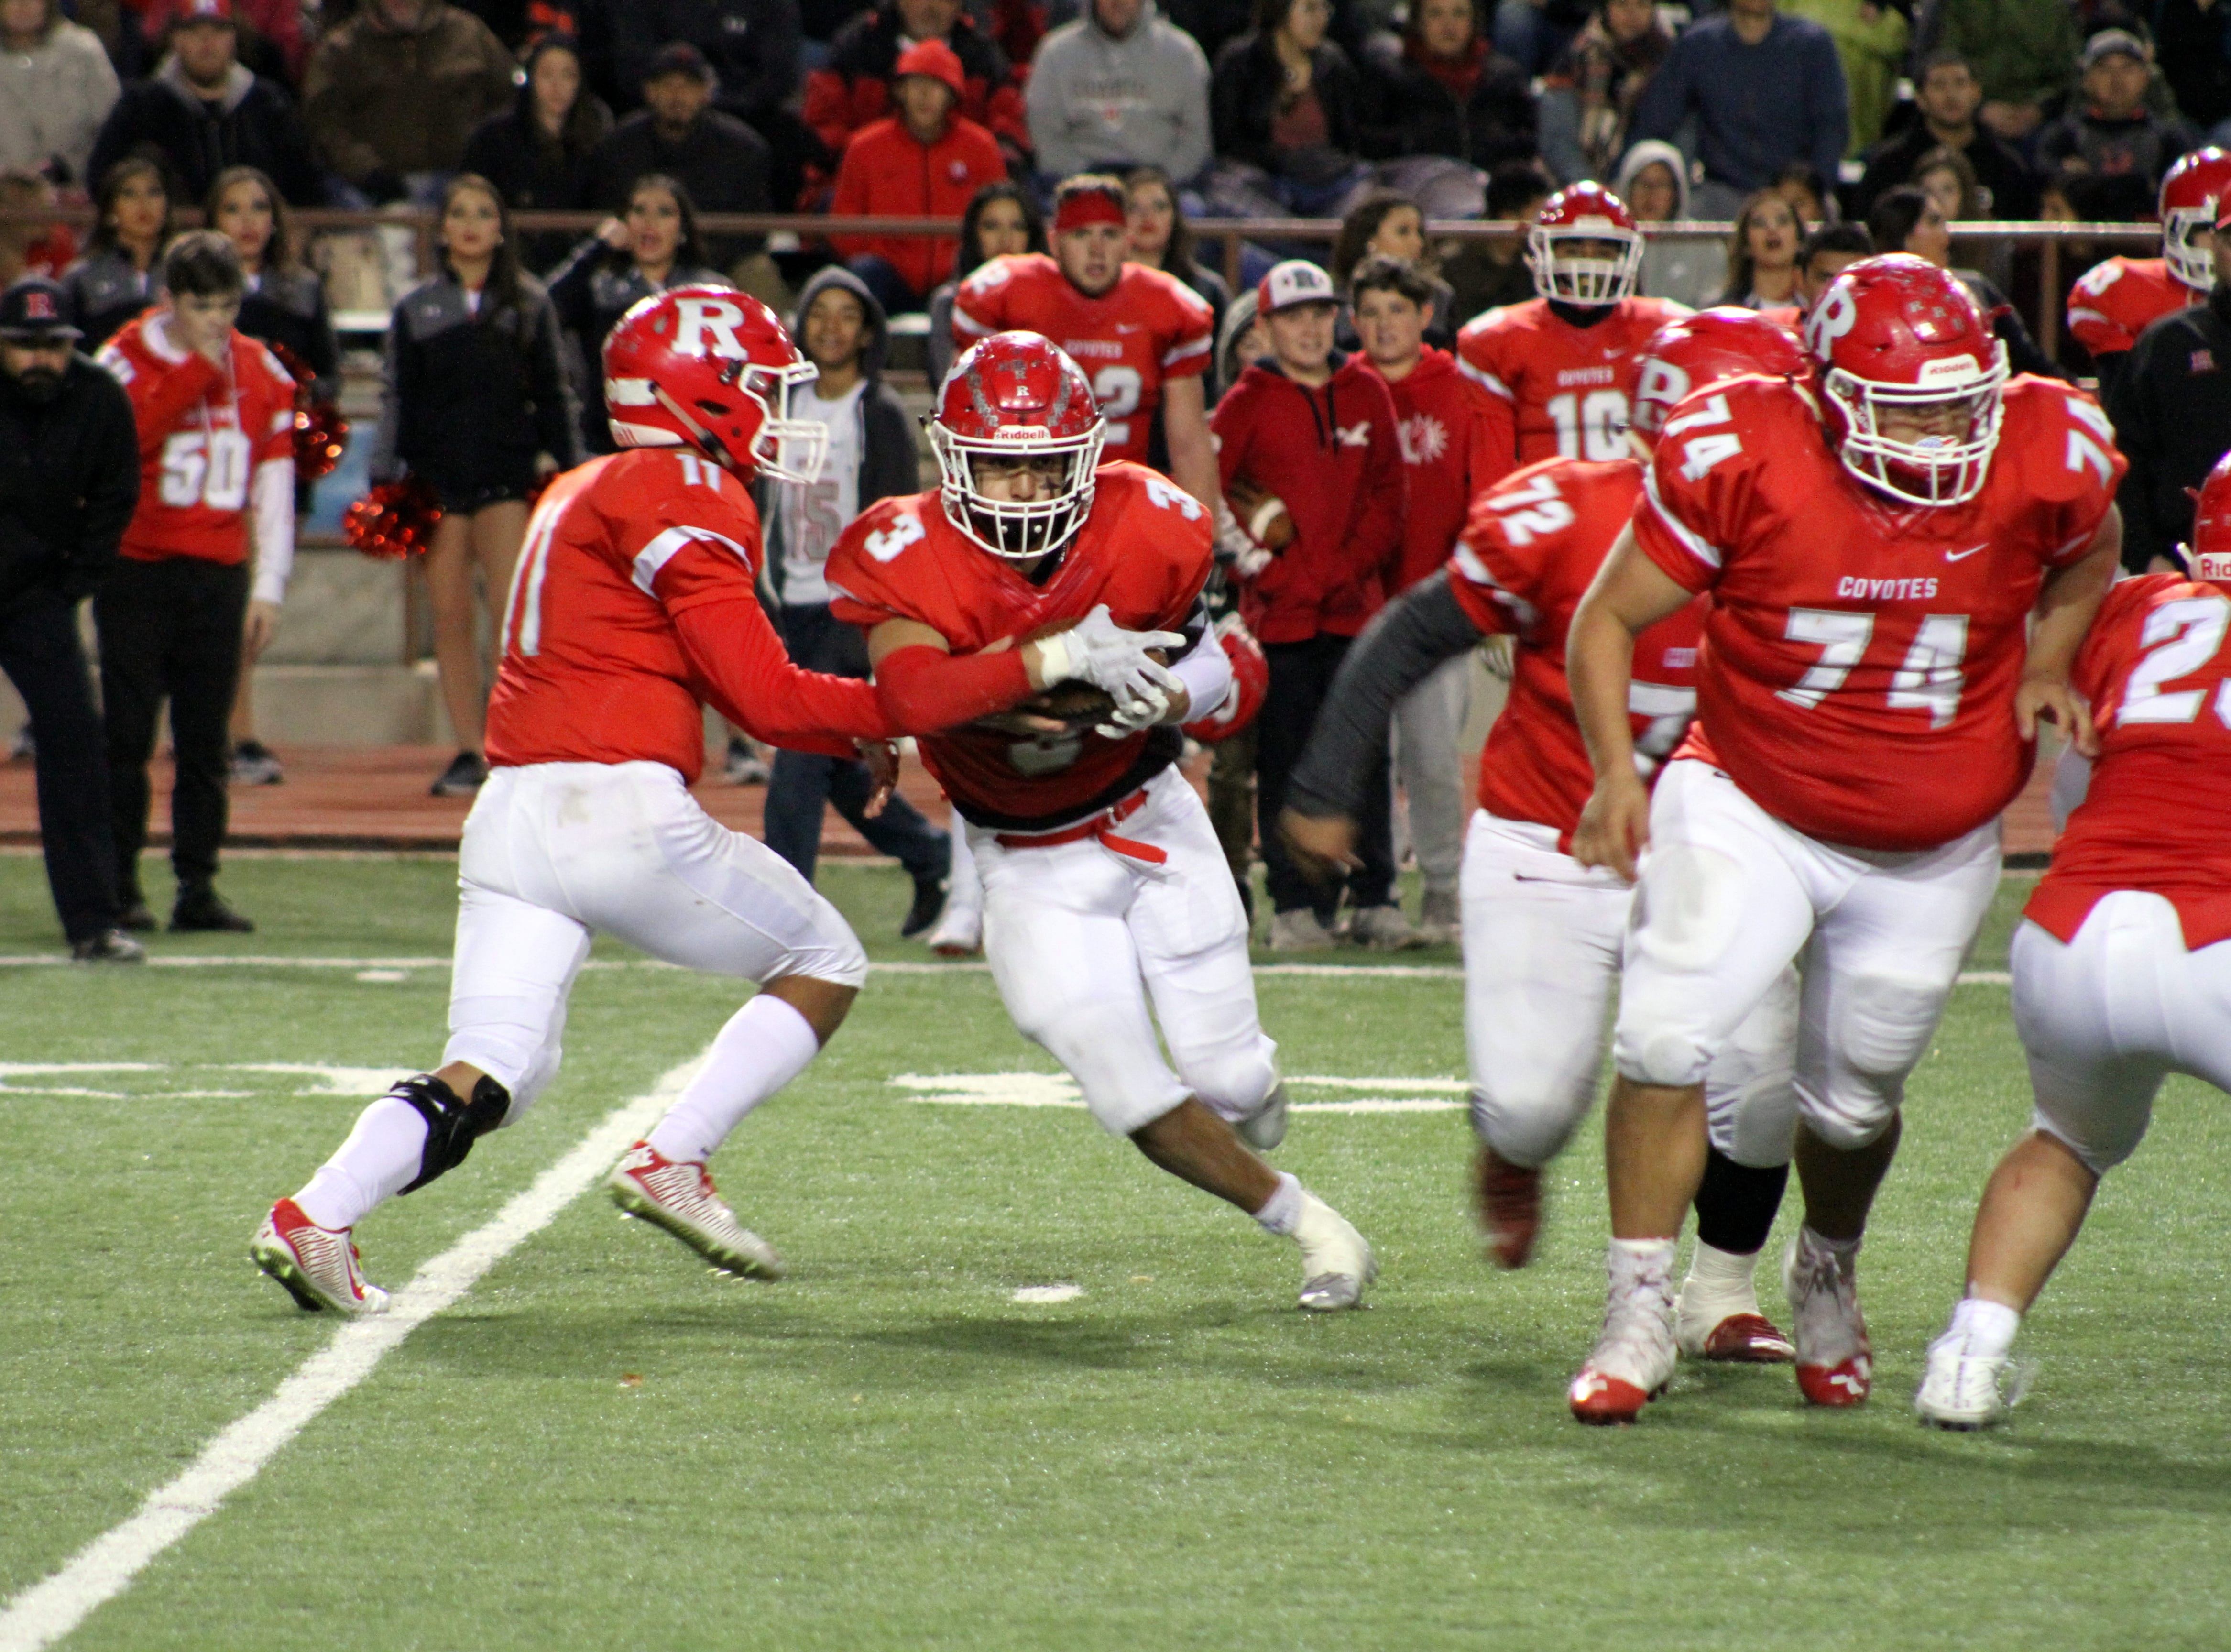 Roswell's Justin Carrasco takes a handoff during Friday's Class 5A semifinal game against Artesia. He finished with 23 carries for 140 yards and two touchdowns.